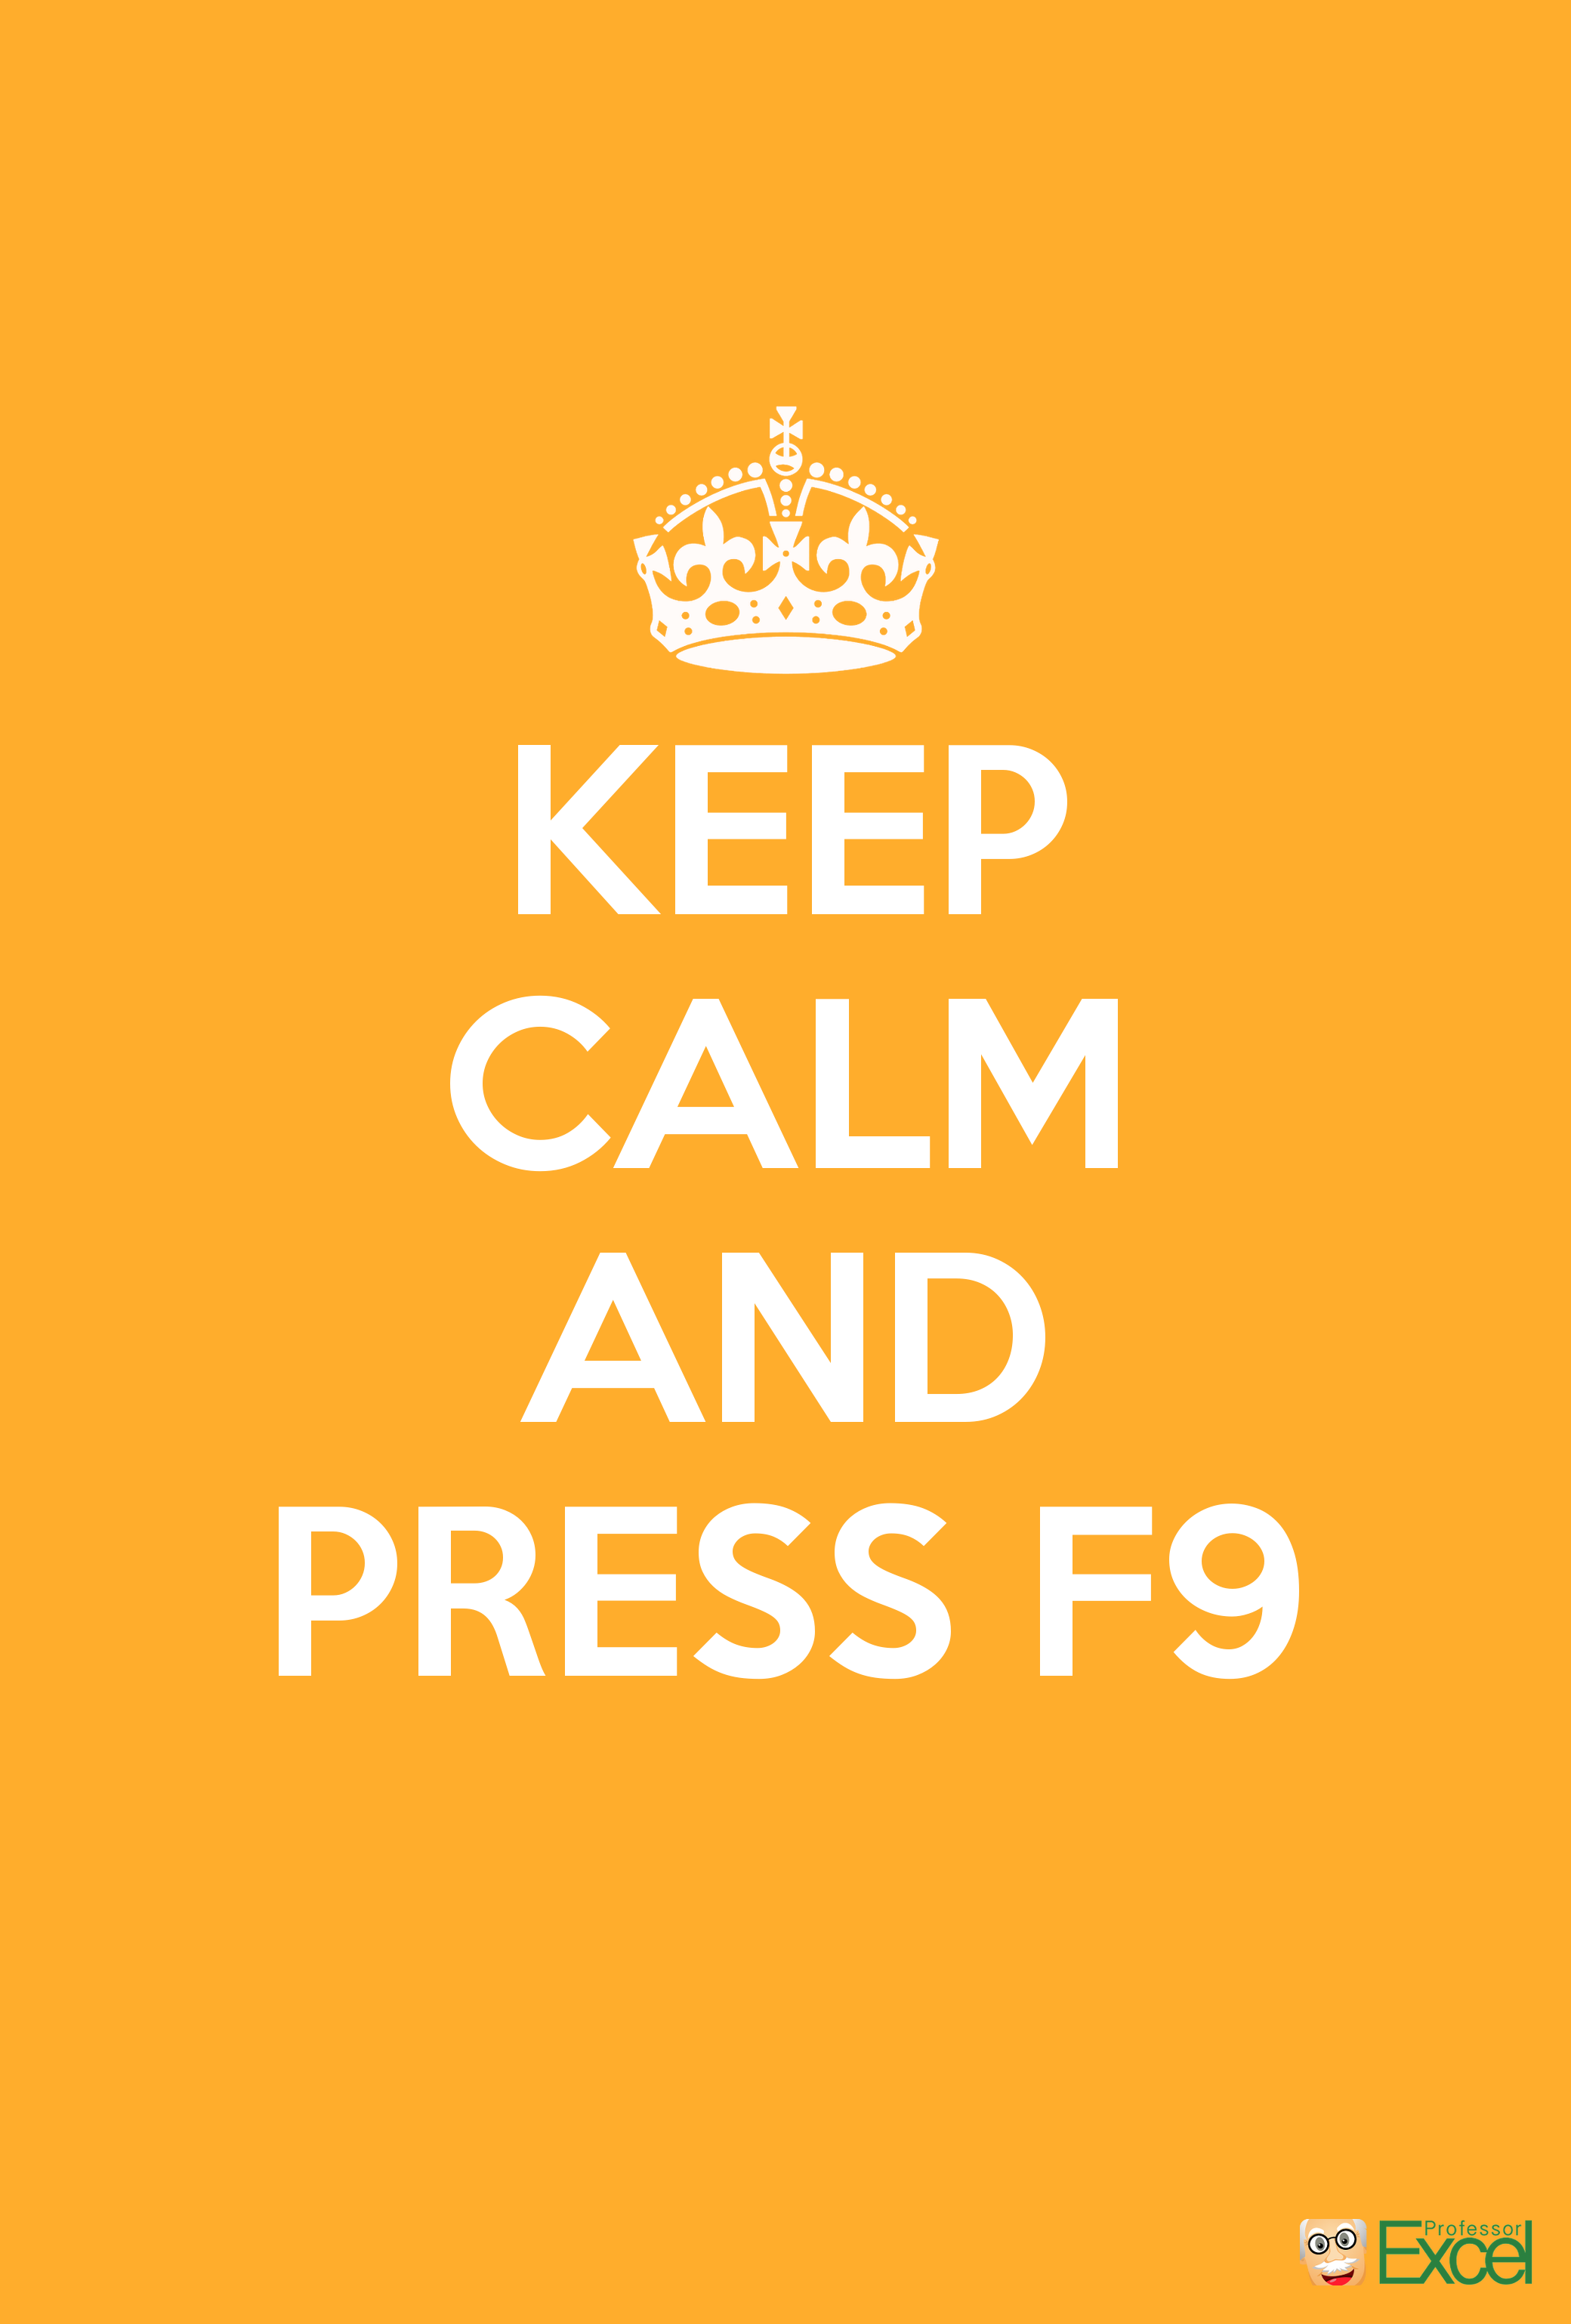 Wallpaper Mobile Excel Free Keep Calm Spreadsheet F9